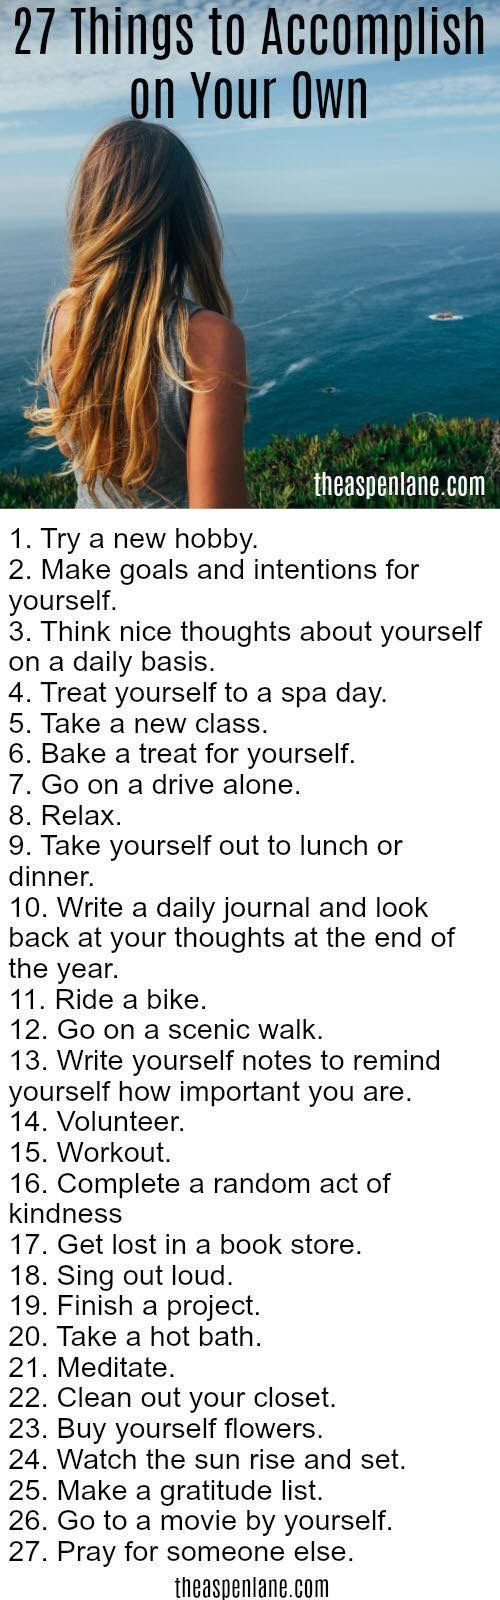 Things to accomplish on your own